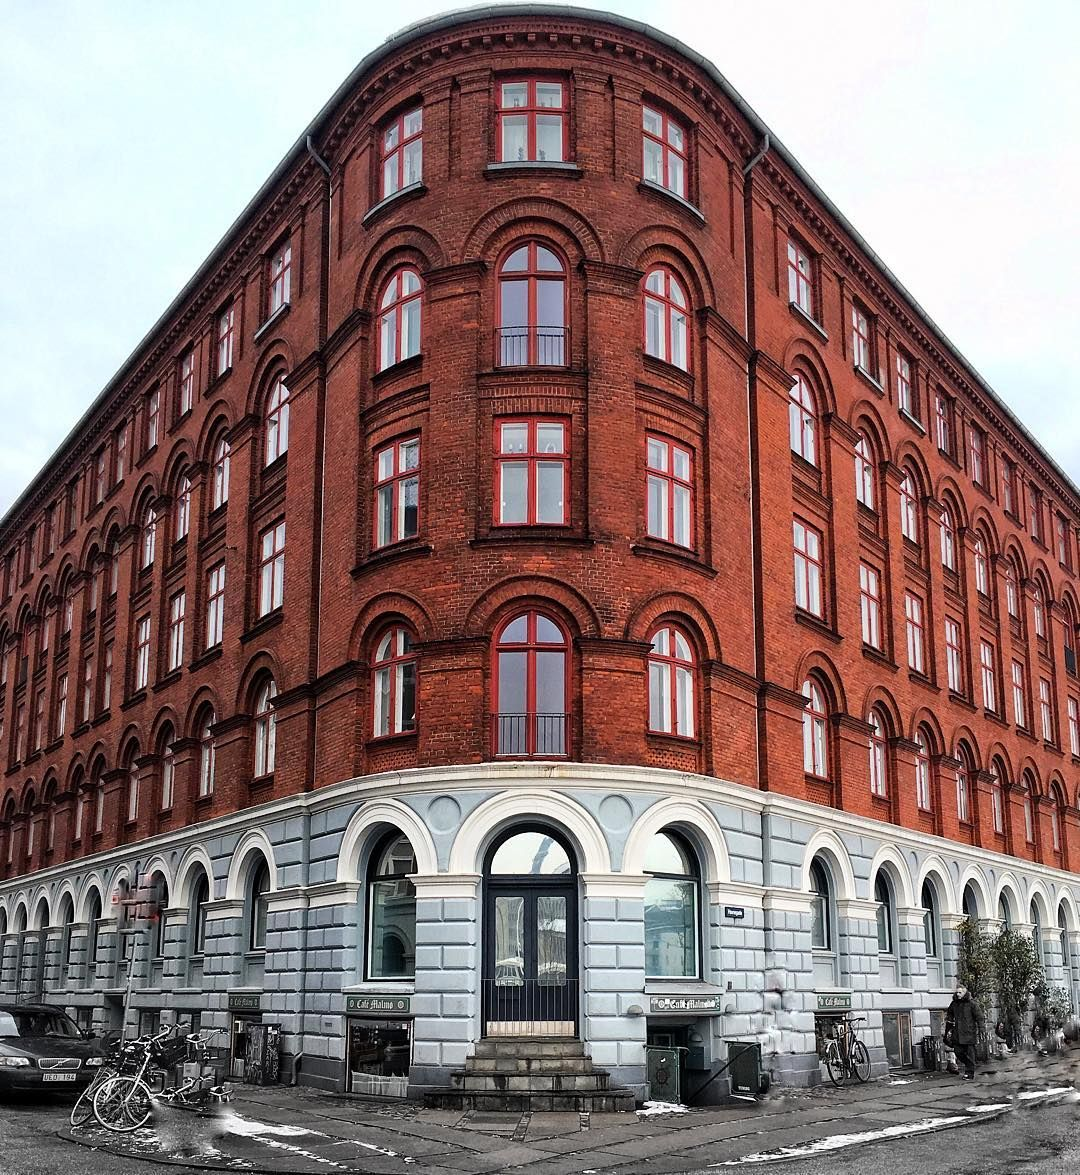 Covey Apartments: An Apartment Building Near Nyhavn In Copenhagen Denmark